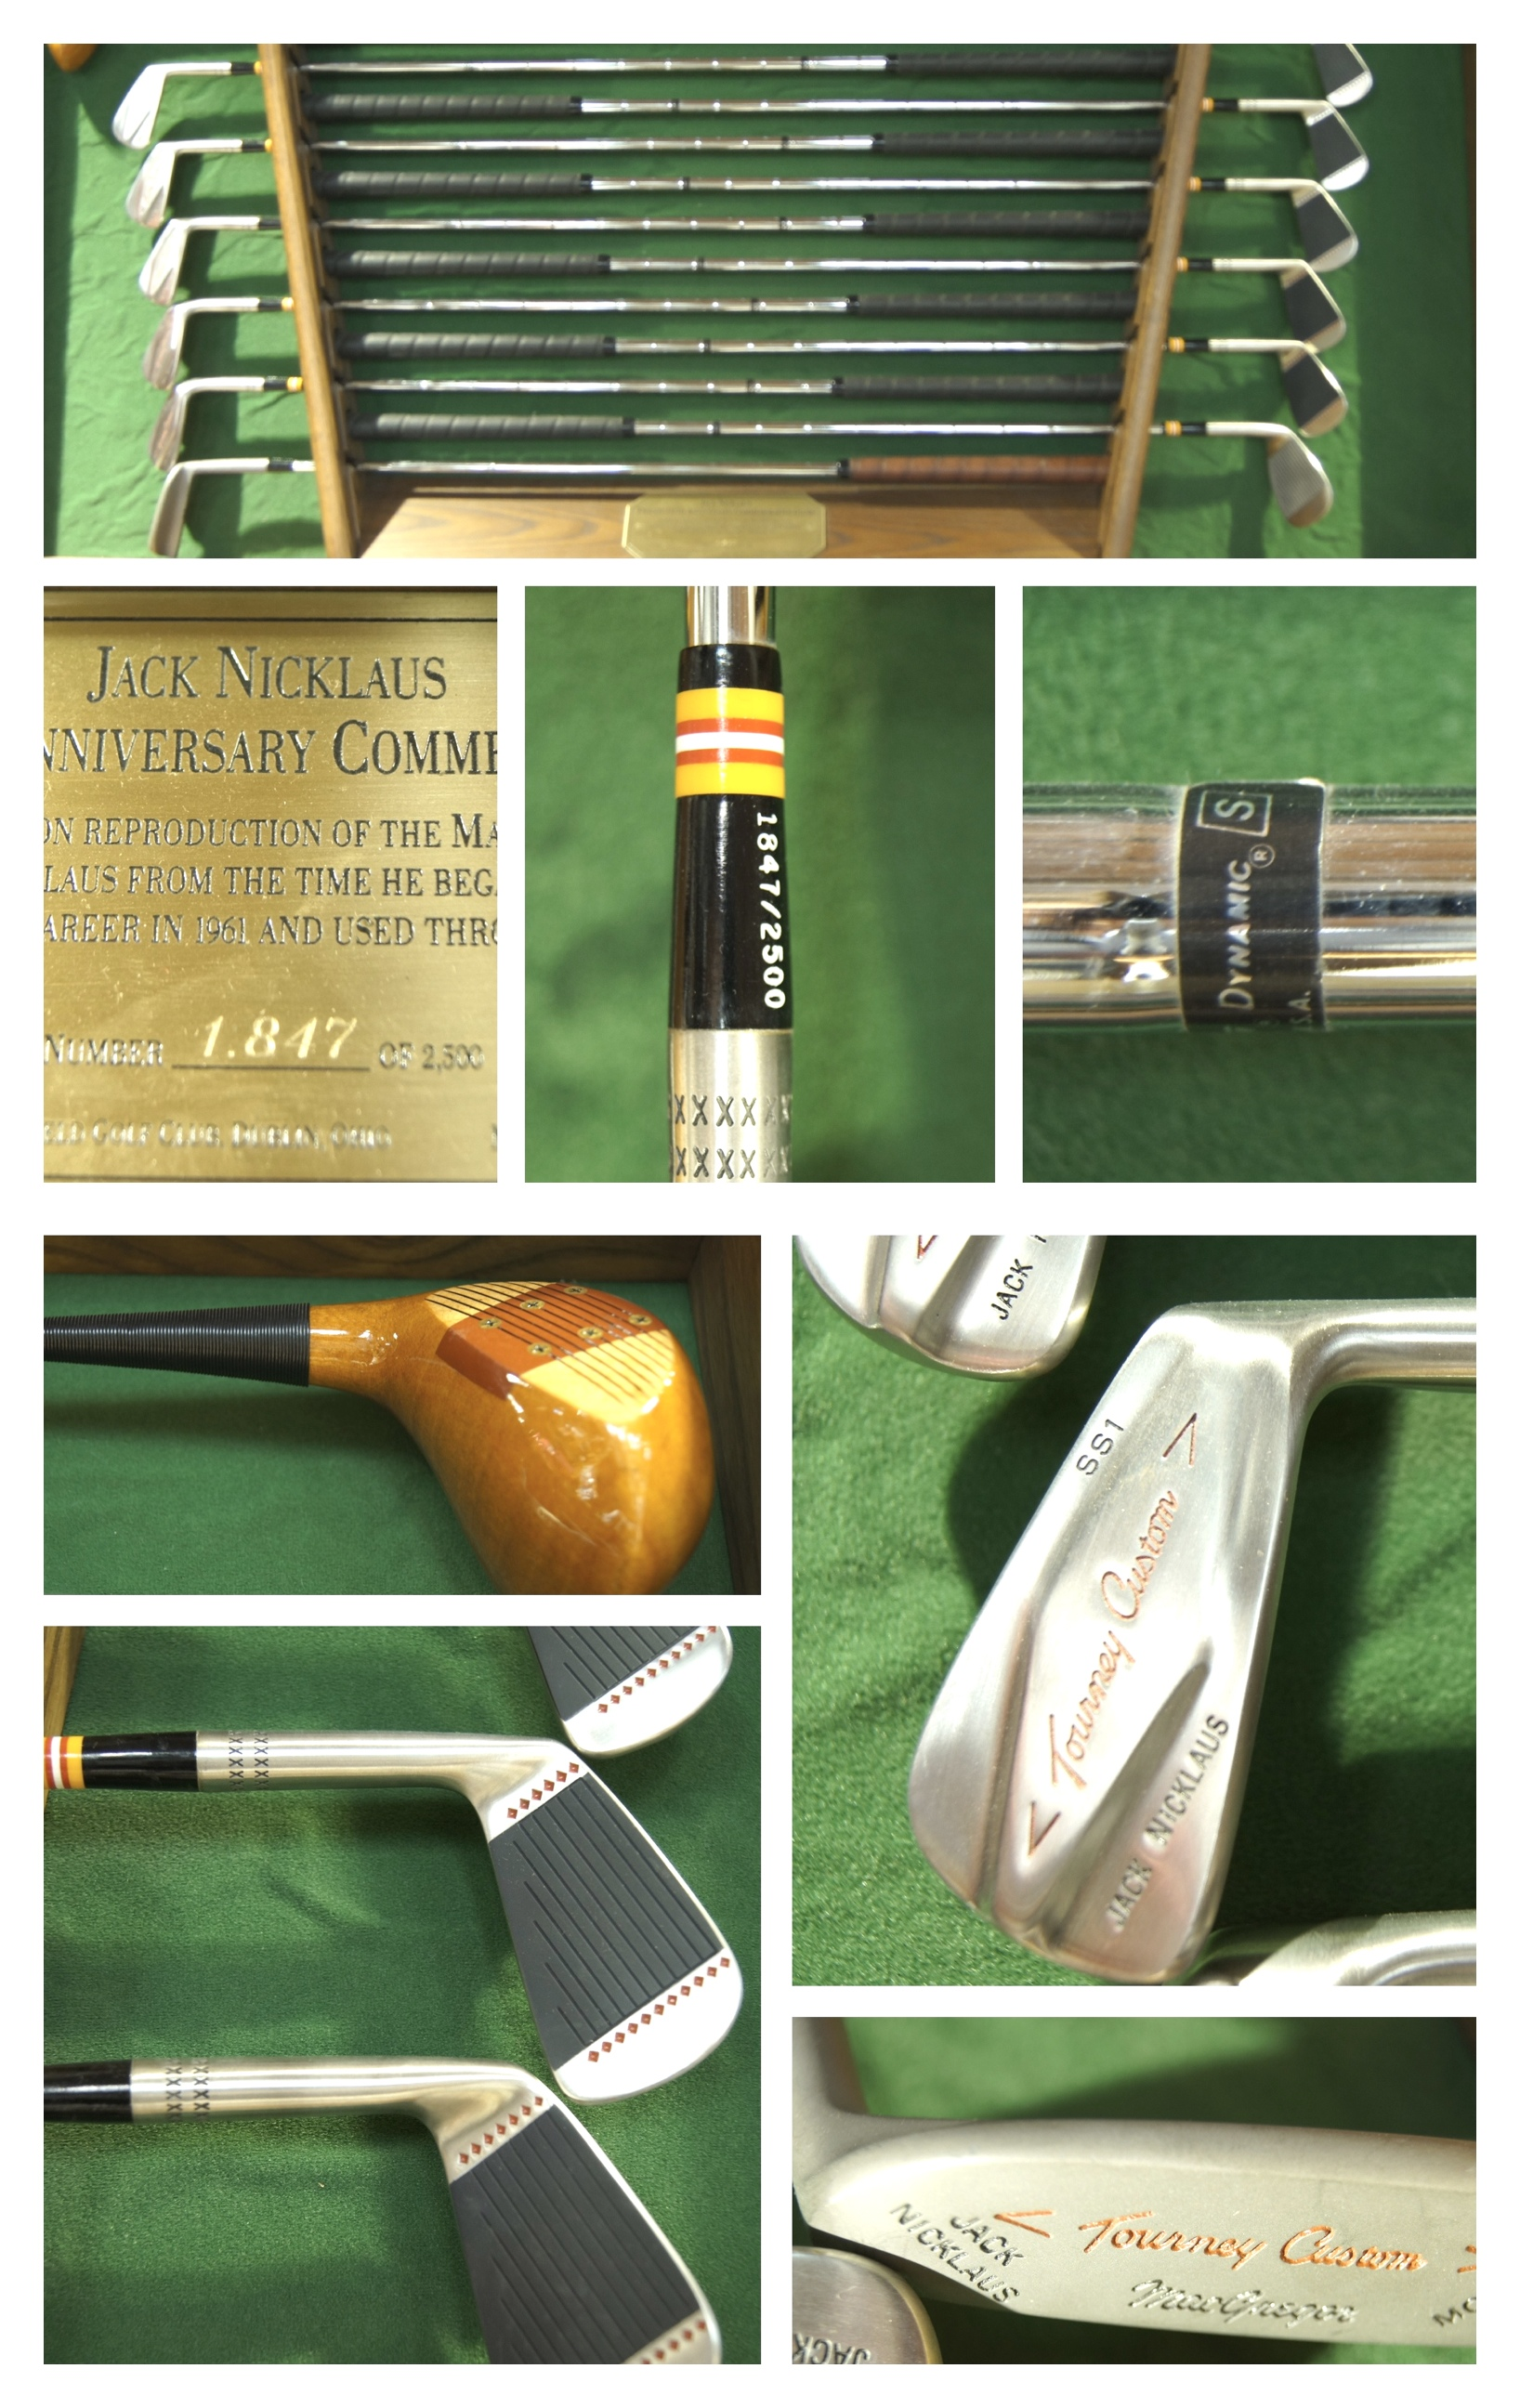 macgregor-jack-nicklaus-tourney-custom-ss1-1847-of-2500.jpeg